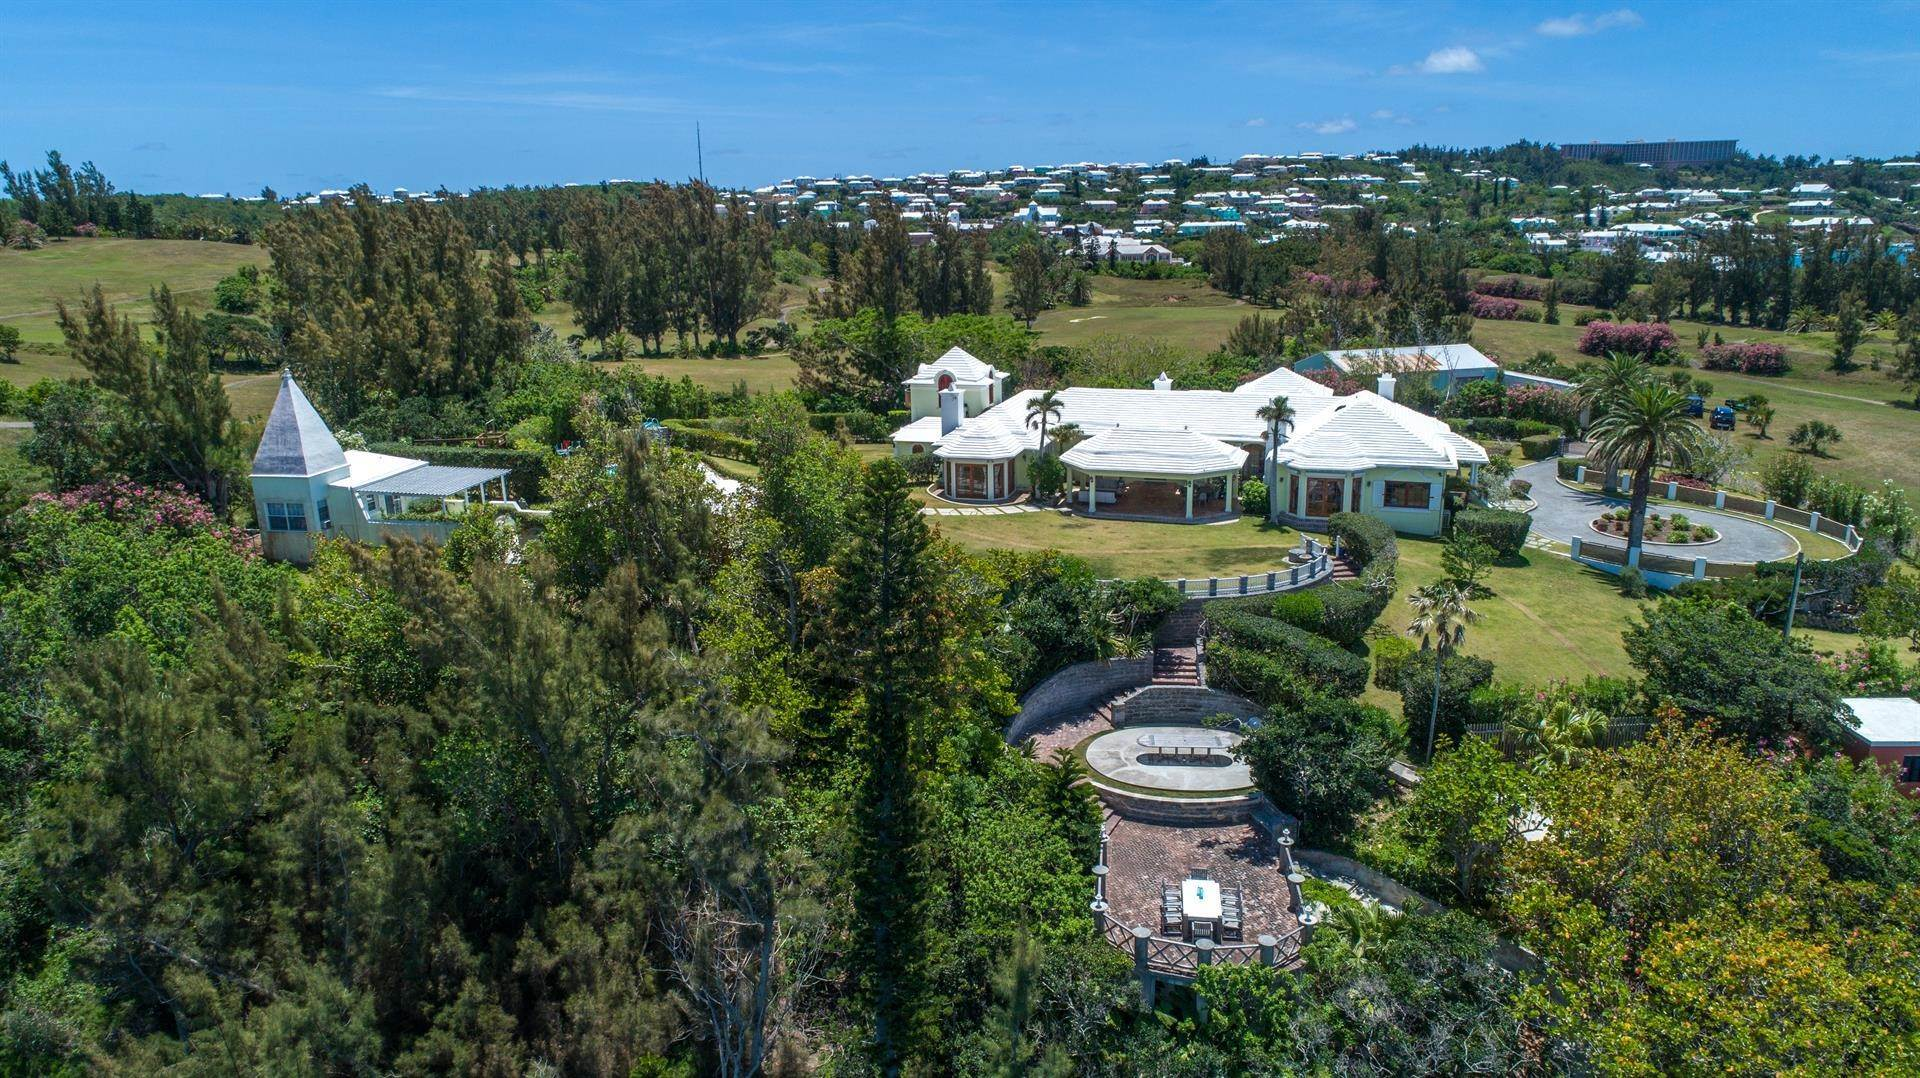 3. Vid Vattnet för Försäljning vid Heron Hill On The Great Sound Heron Hill On The Great Sound, 31 Riddell's Bay Road,Bermuda – Sinclair Realty